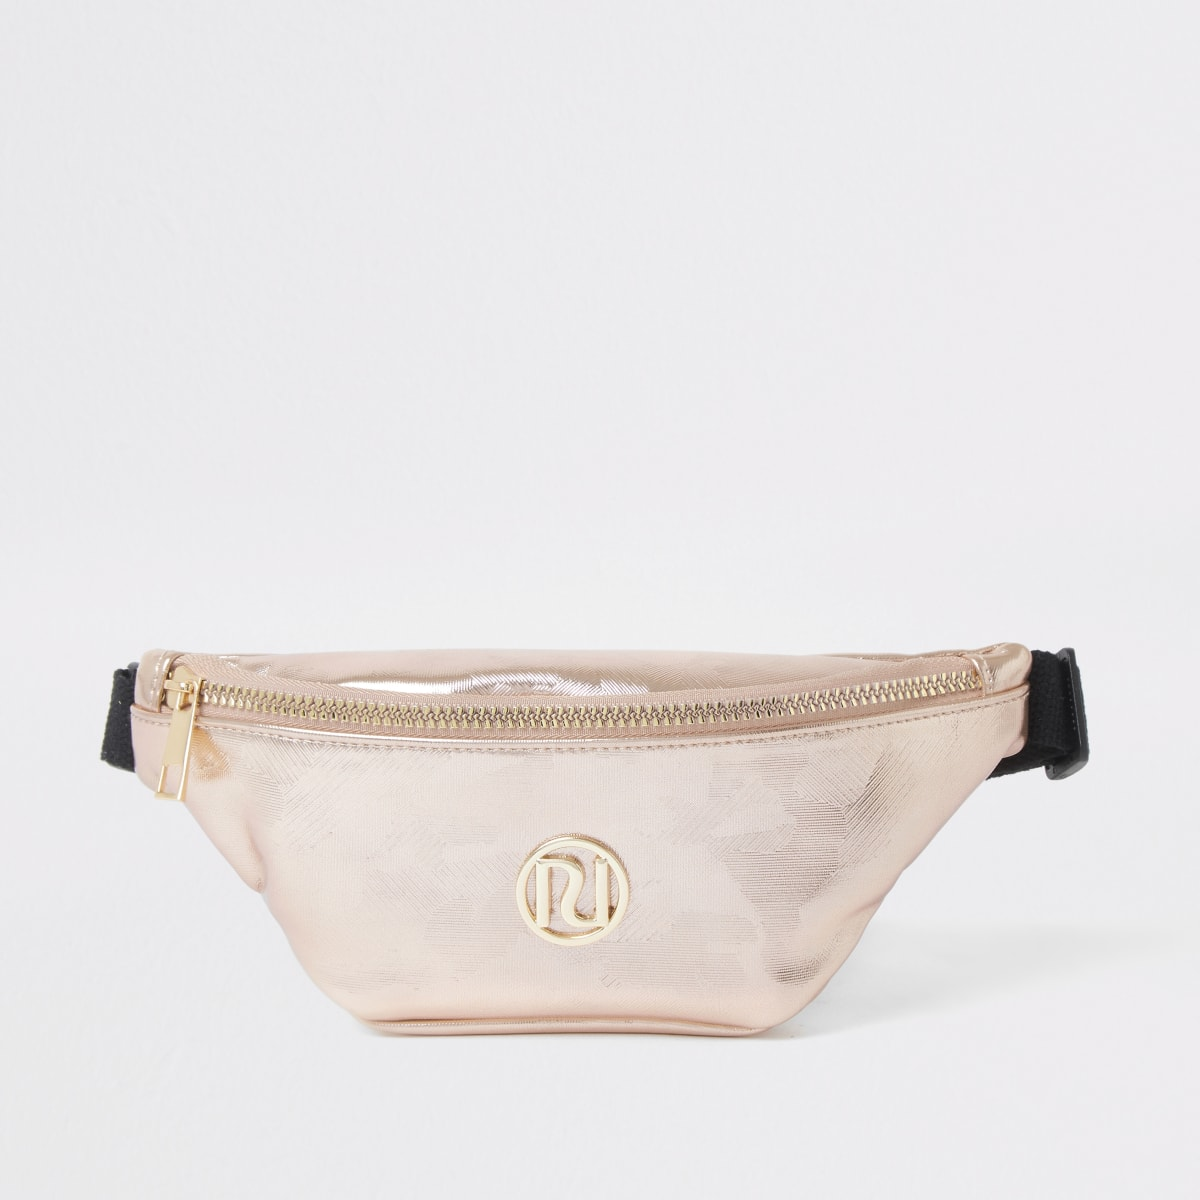 Girls rose gold bum bag